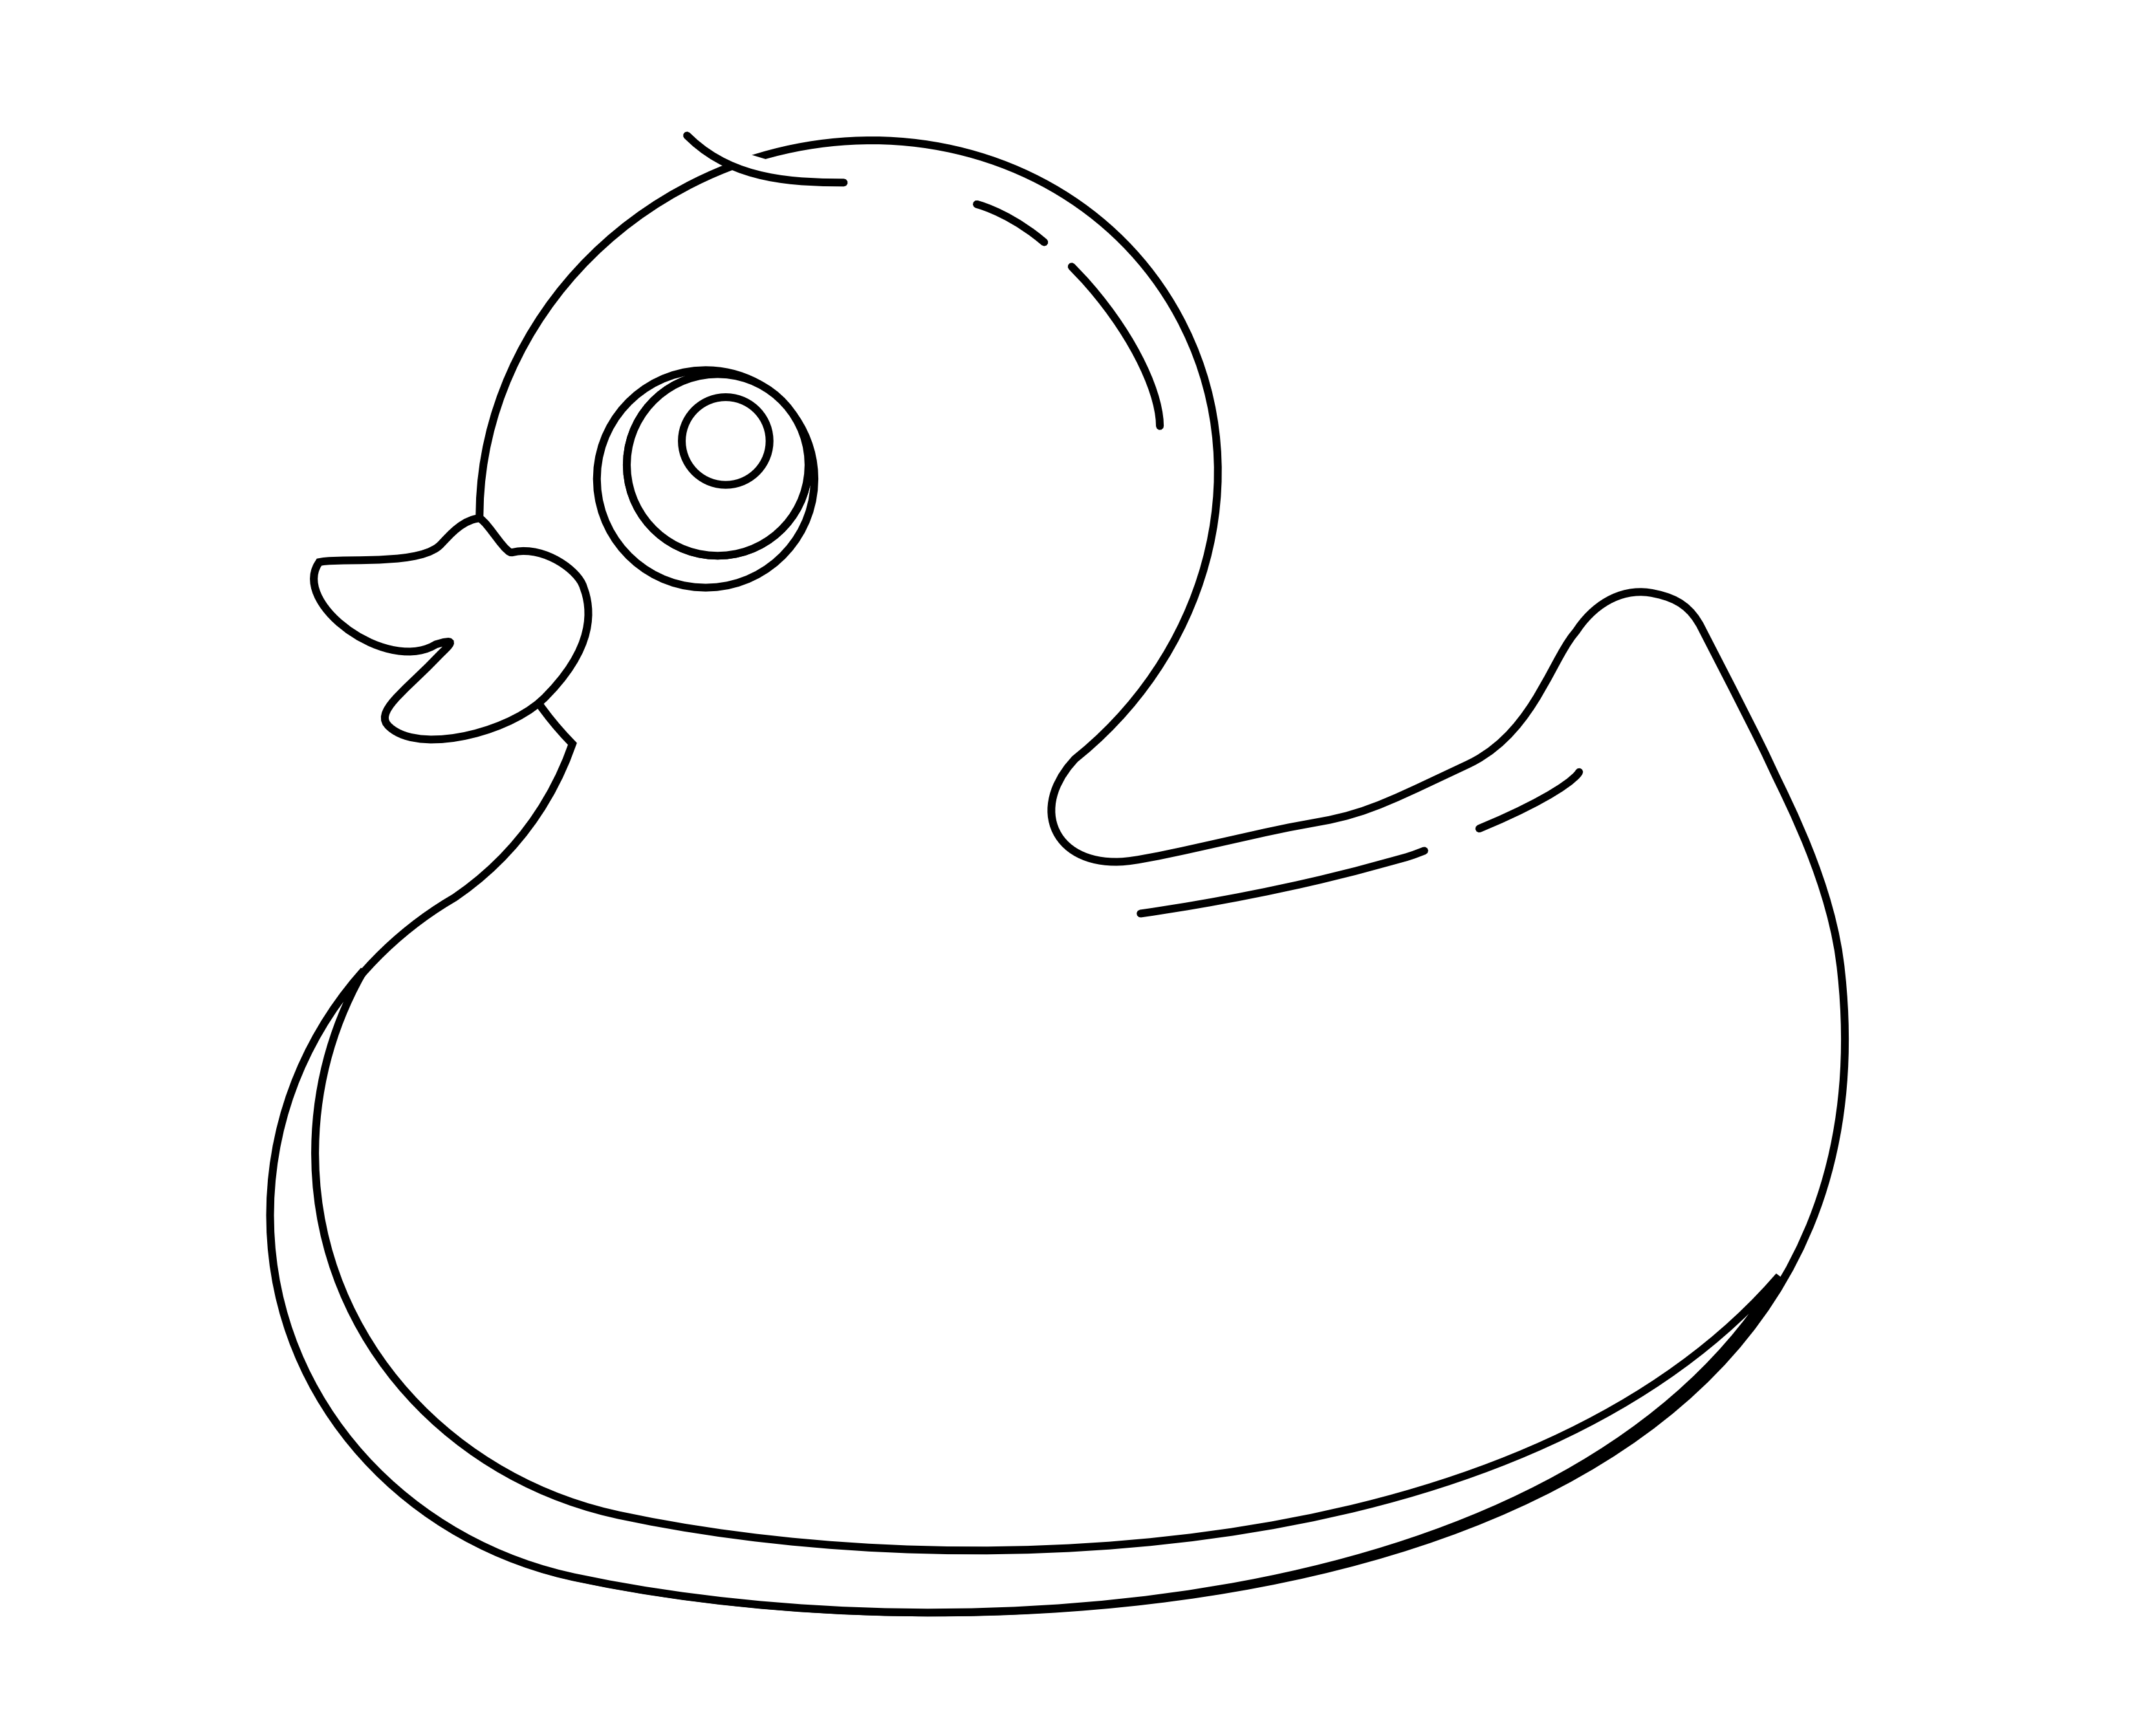 Free Rubber Ducky Art Download Free Clip Art Free Clip Art On Clipart Library